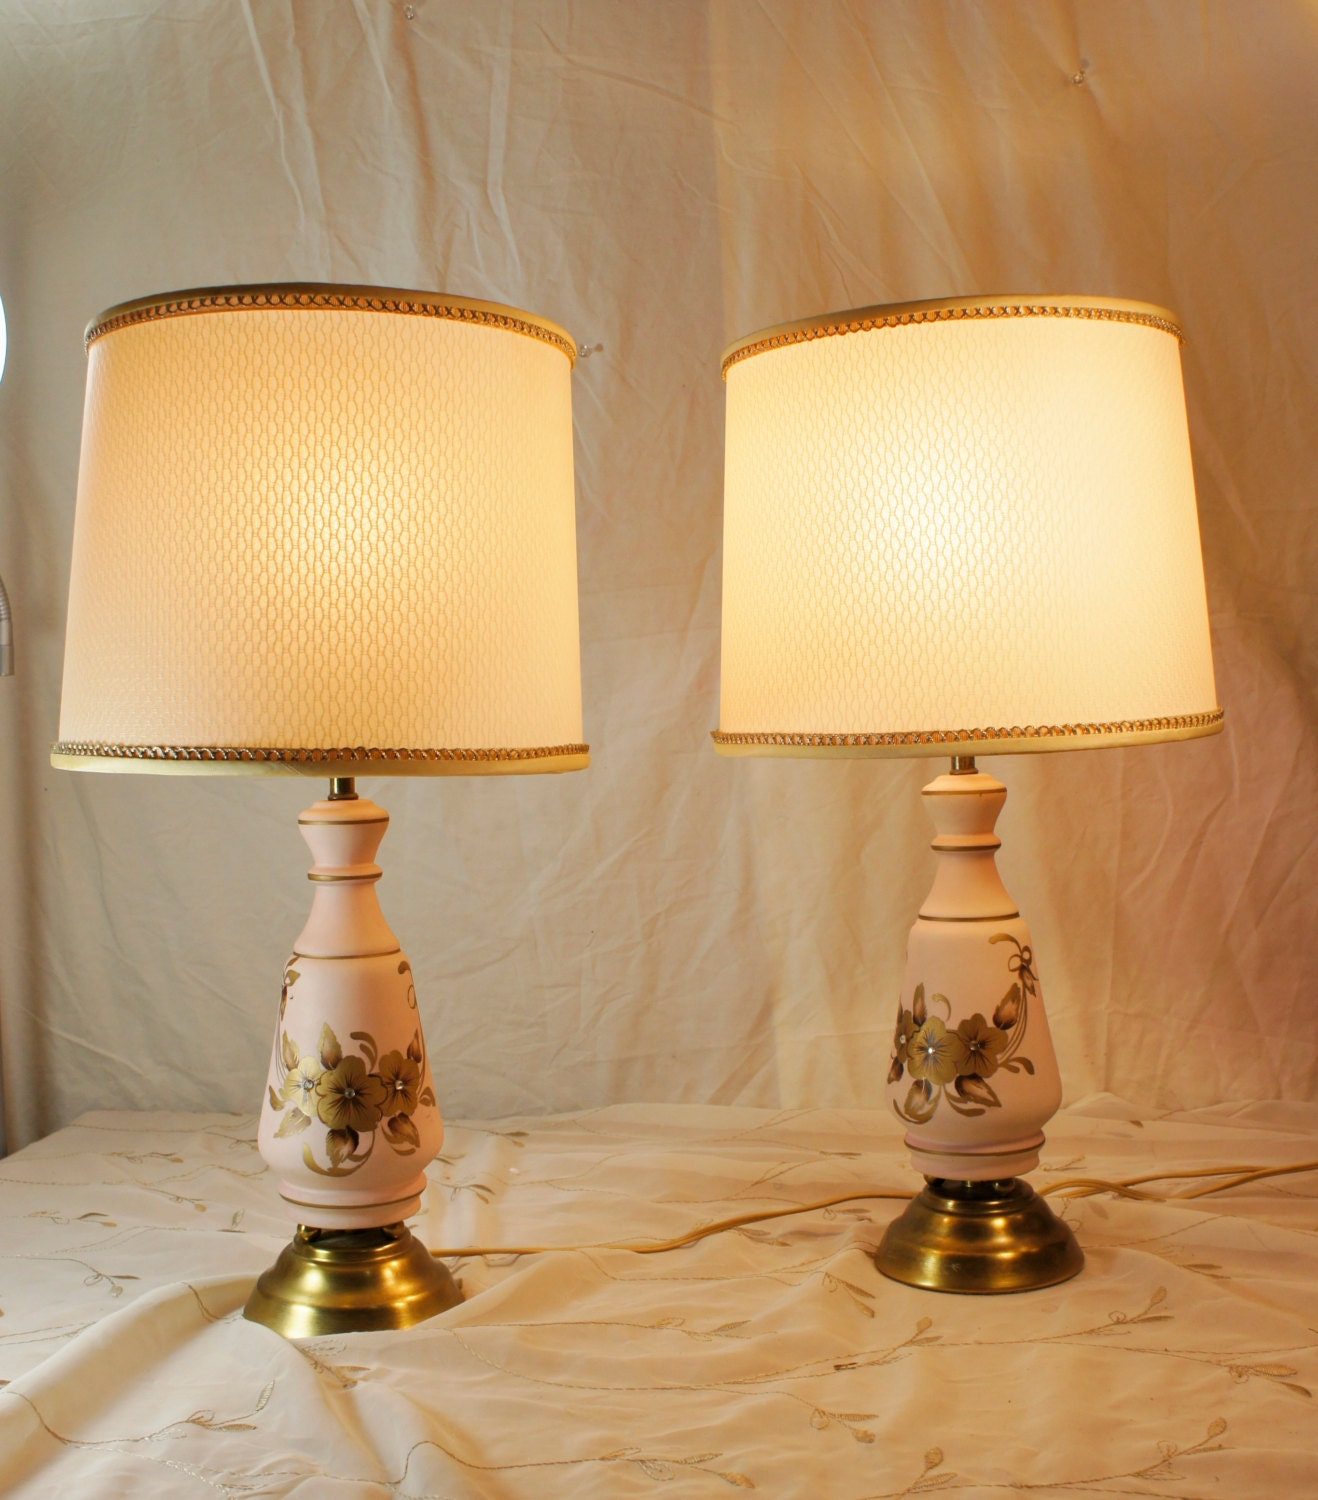 Pair Pink And Gold Bedroom Lamps With Shades Flowers By Gleaned